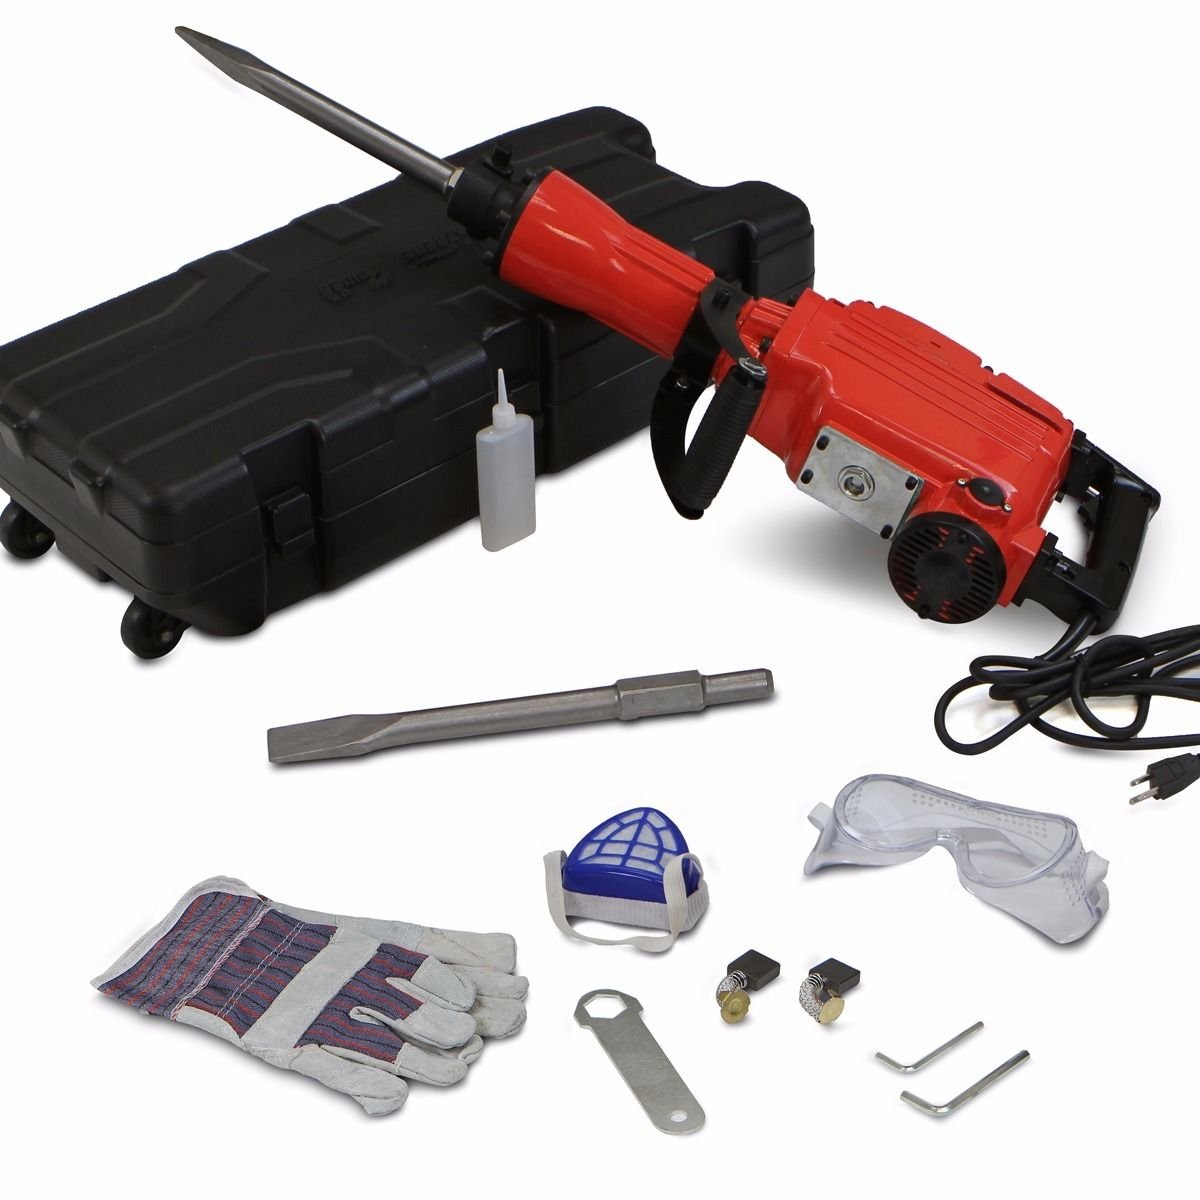 COLIBROX-- HD 2200 Watt Electric Demolition Jack Hammer Concrete Breaker Punch Chisel Bit by COLIBROX